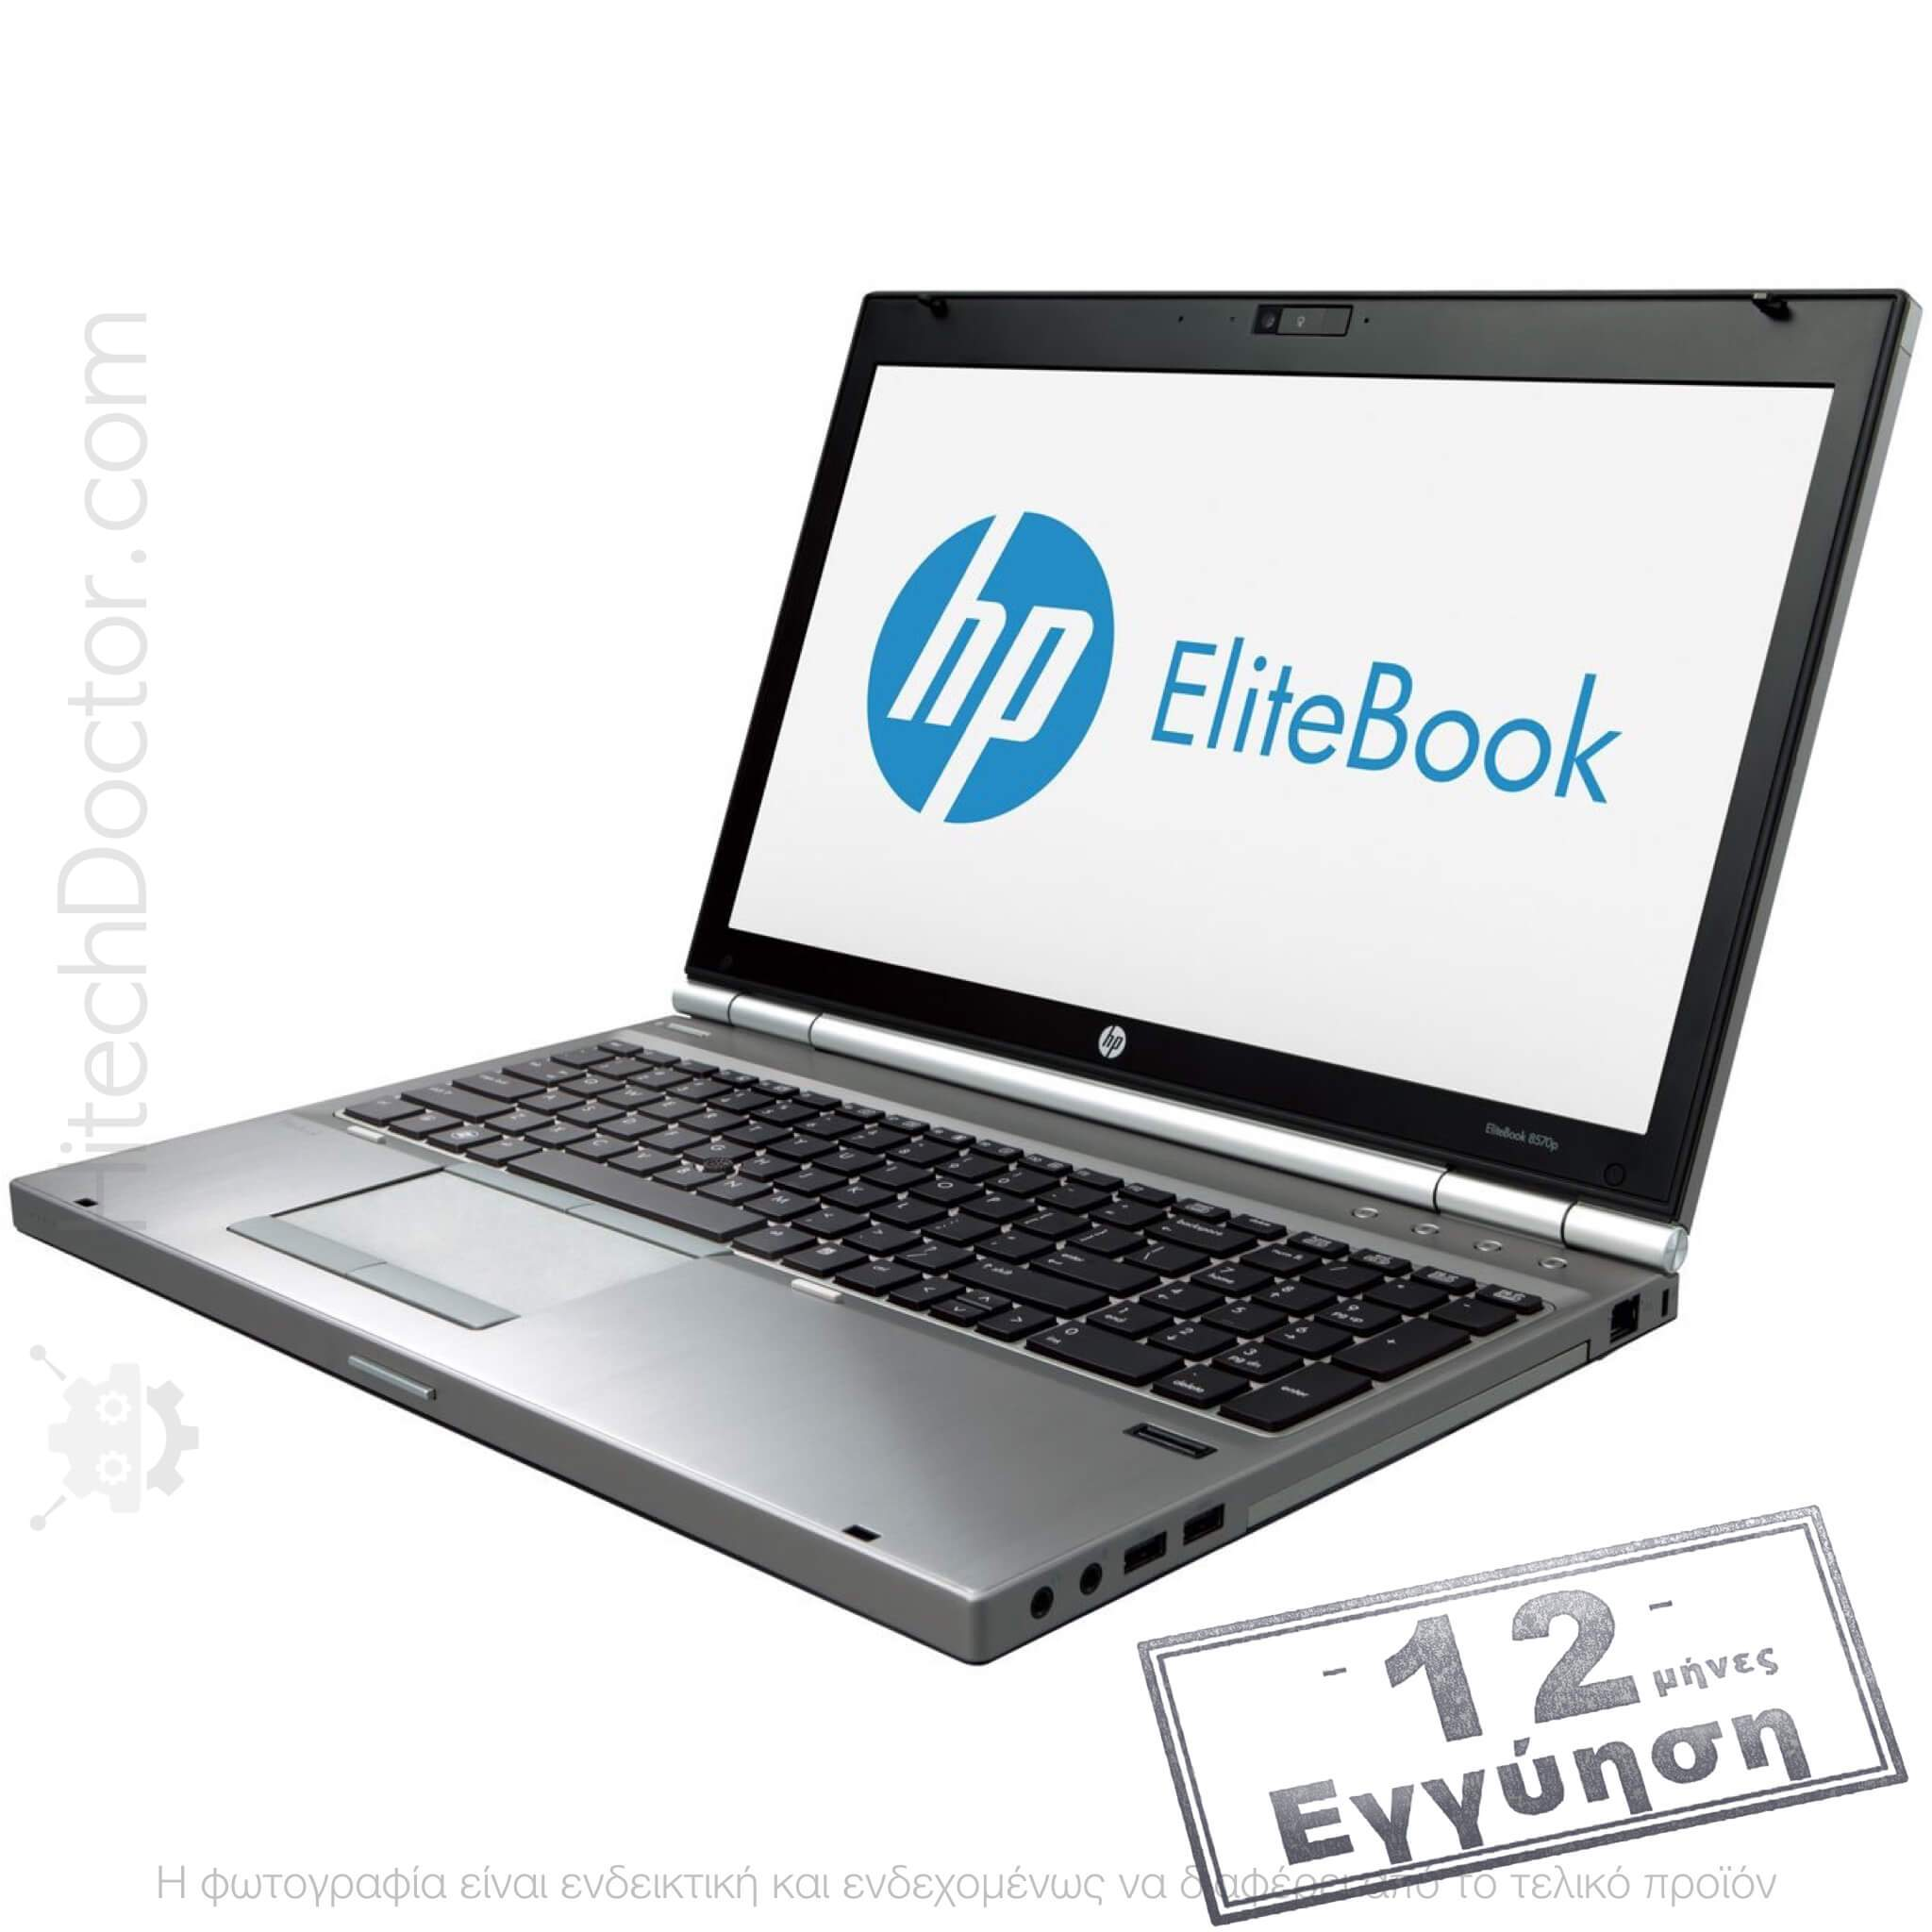 HP EliteBook 8570p Linux